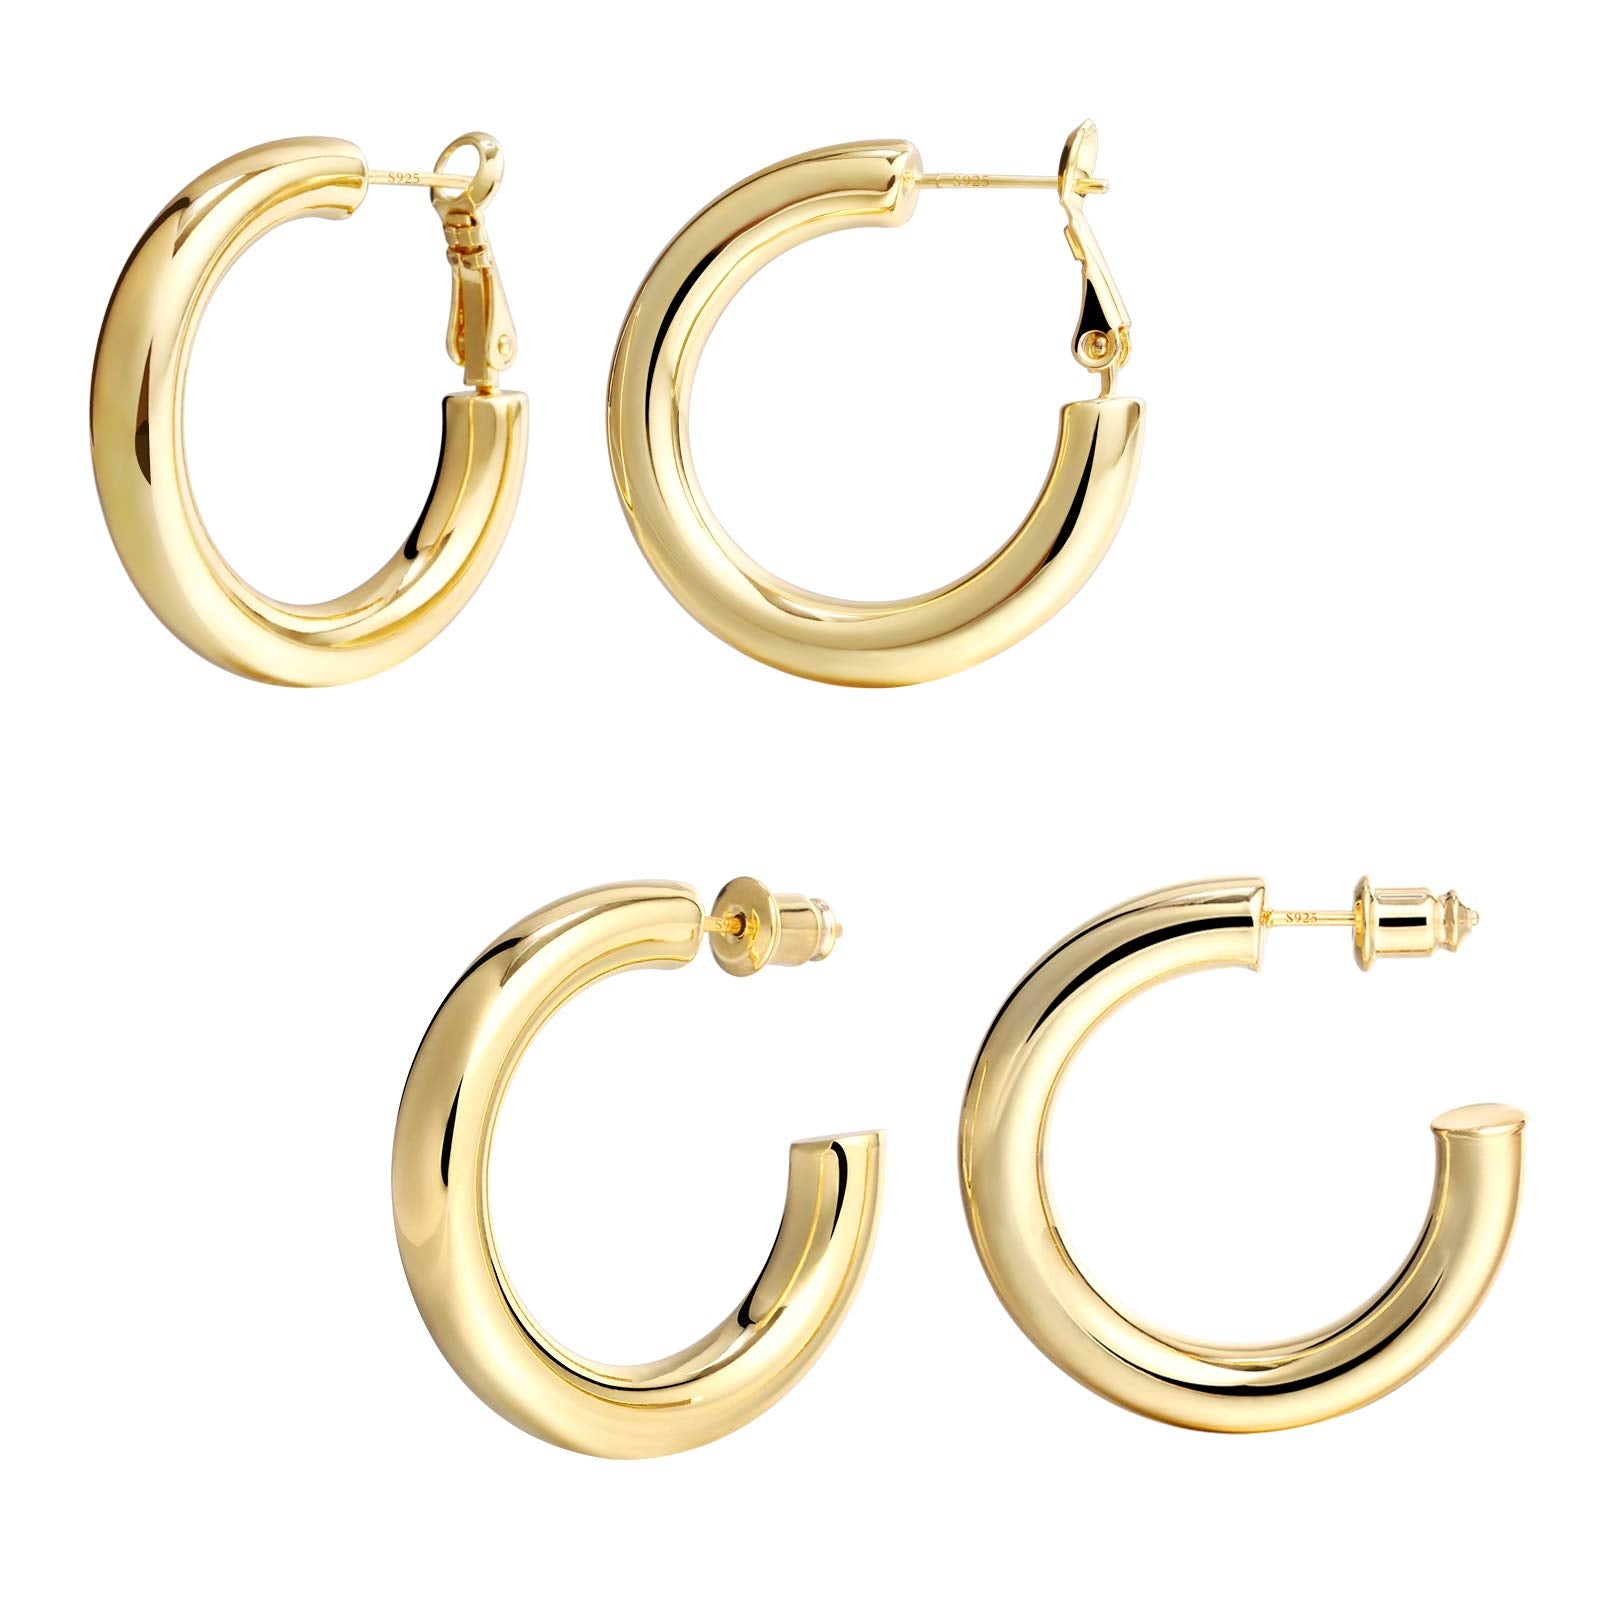 2 Pairs 14K Gold Plated Chunky Hoop Earrings